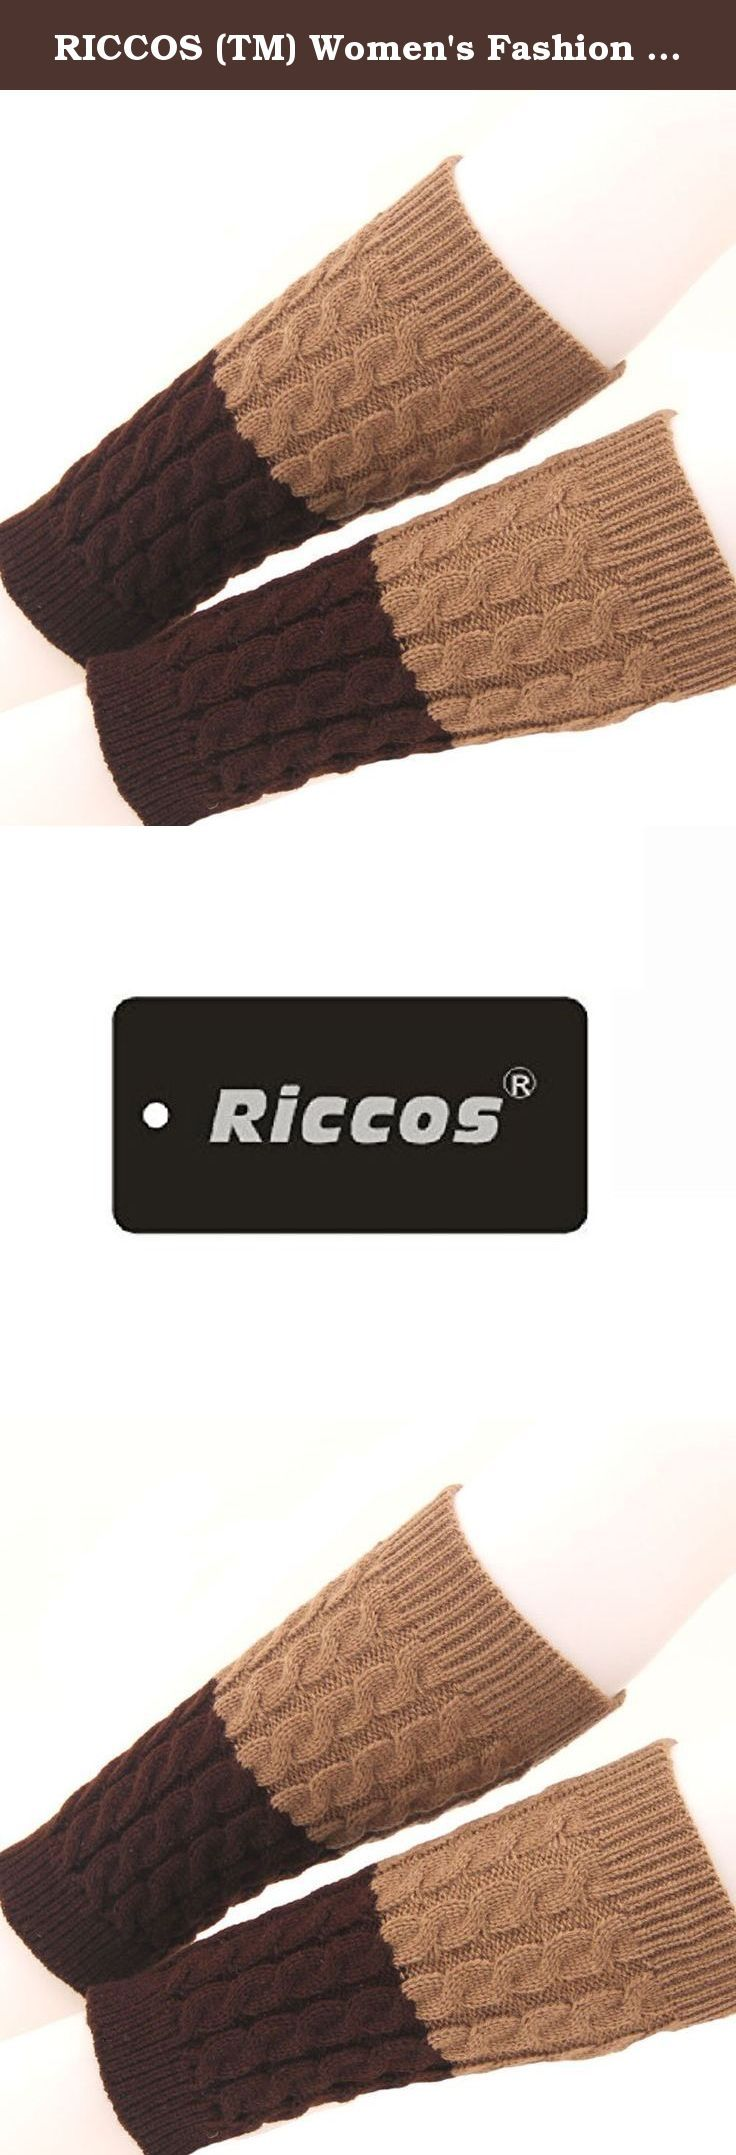 RICCOS (TM) Women's Fashion Winter Stretchy Thickened Warm Knitted Knee High Boot Socks Cuffs Leg Warmer (Khaki and Coffee). It is very warm and the design is keep up with the fashion. RICCOS knitted and Multi Colors leggings for a fun and fashionable effect.